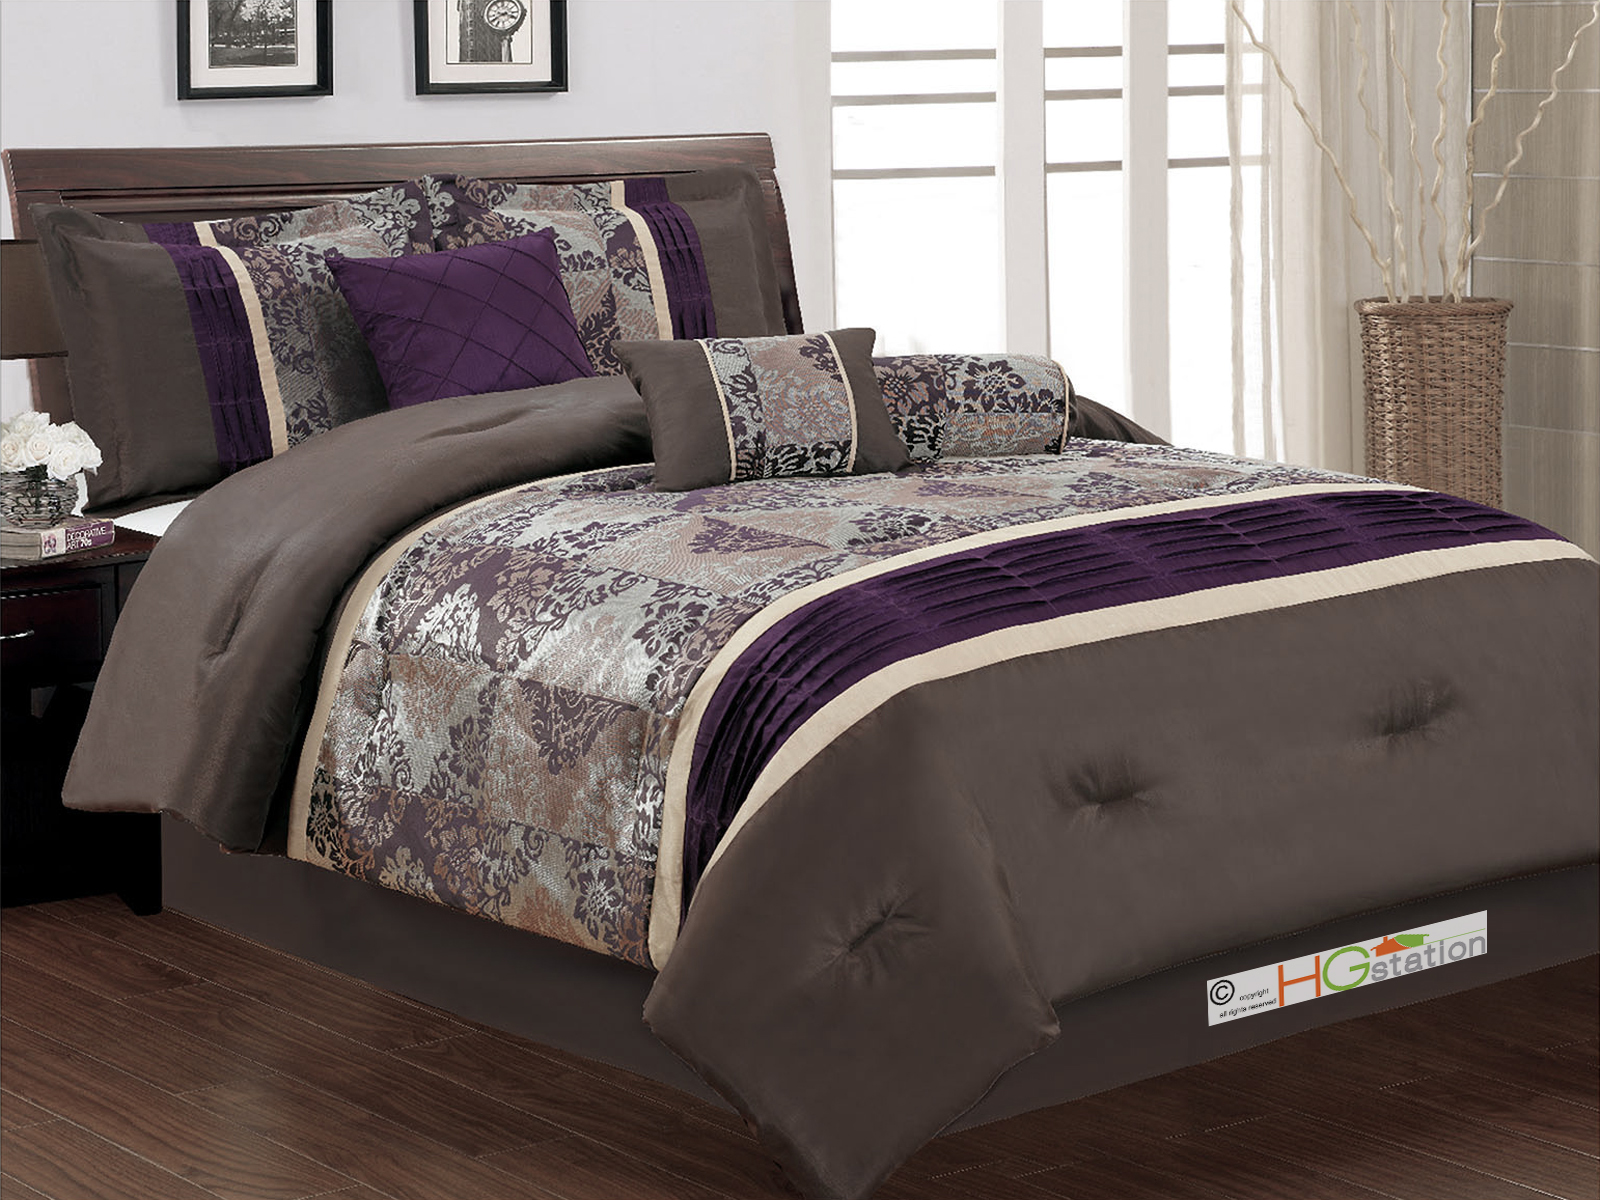 7 pc floral damask jacquard patchwork pleated comforter set coffee brown purple beige king walmart com